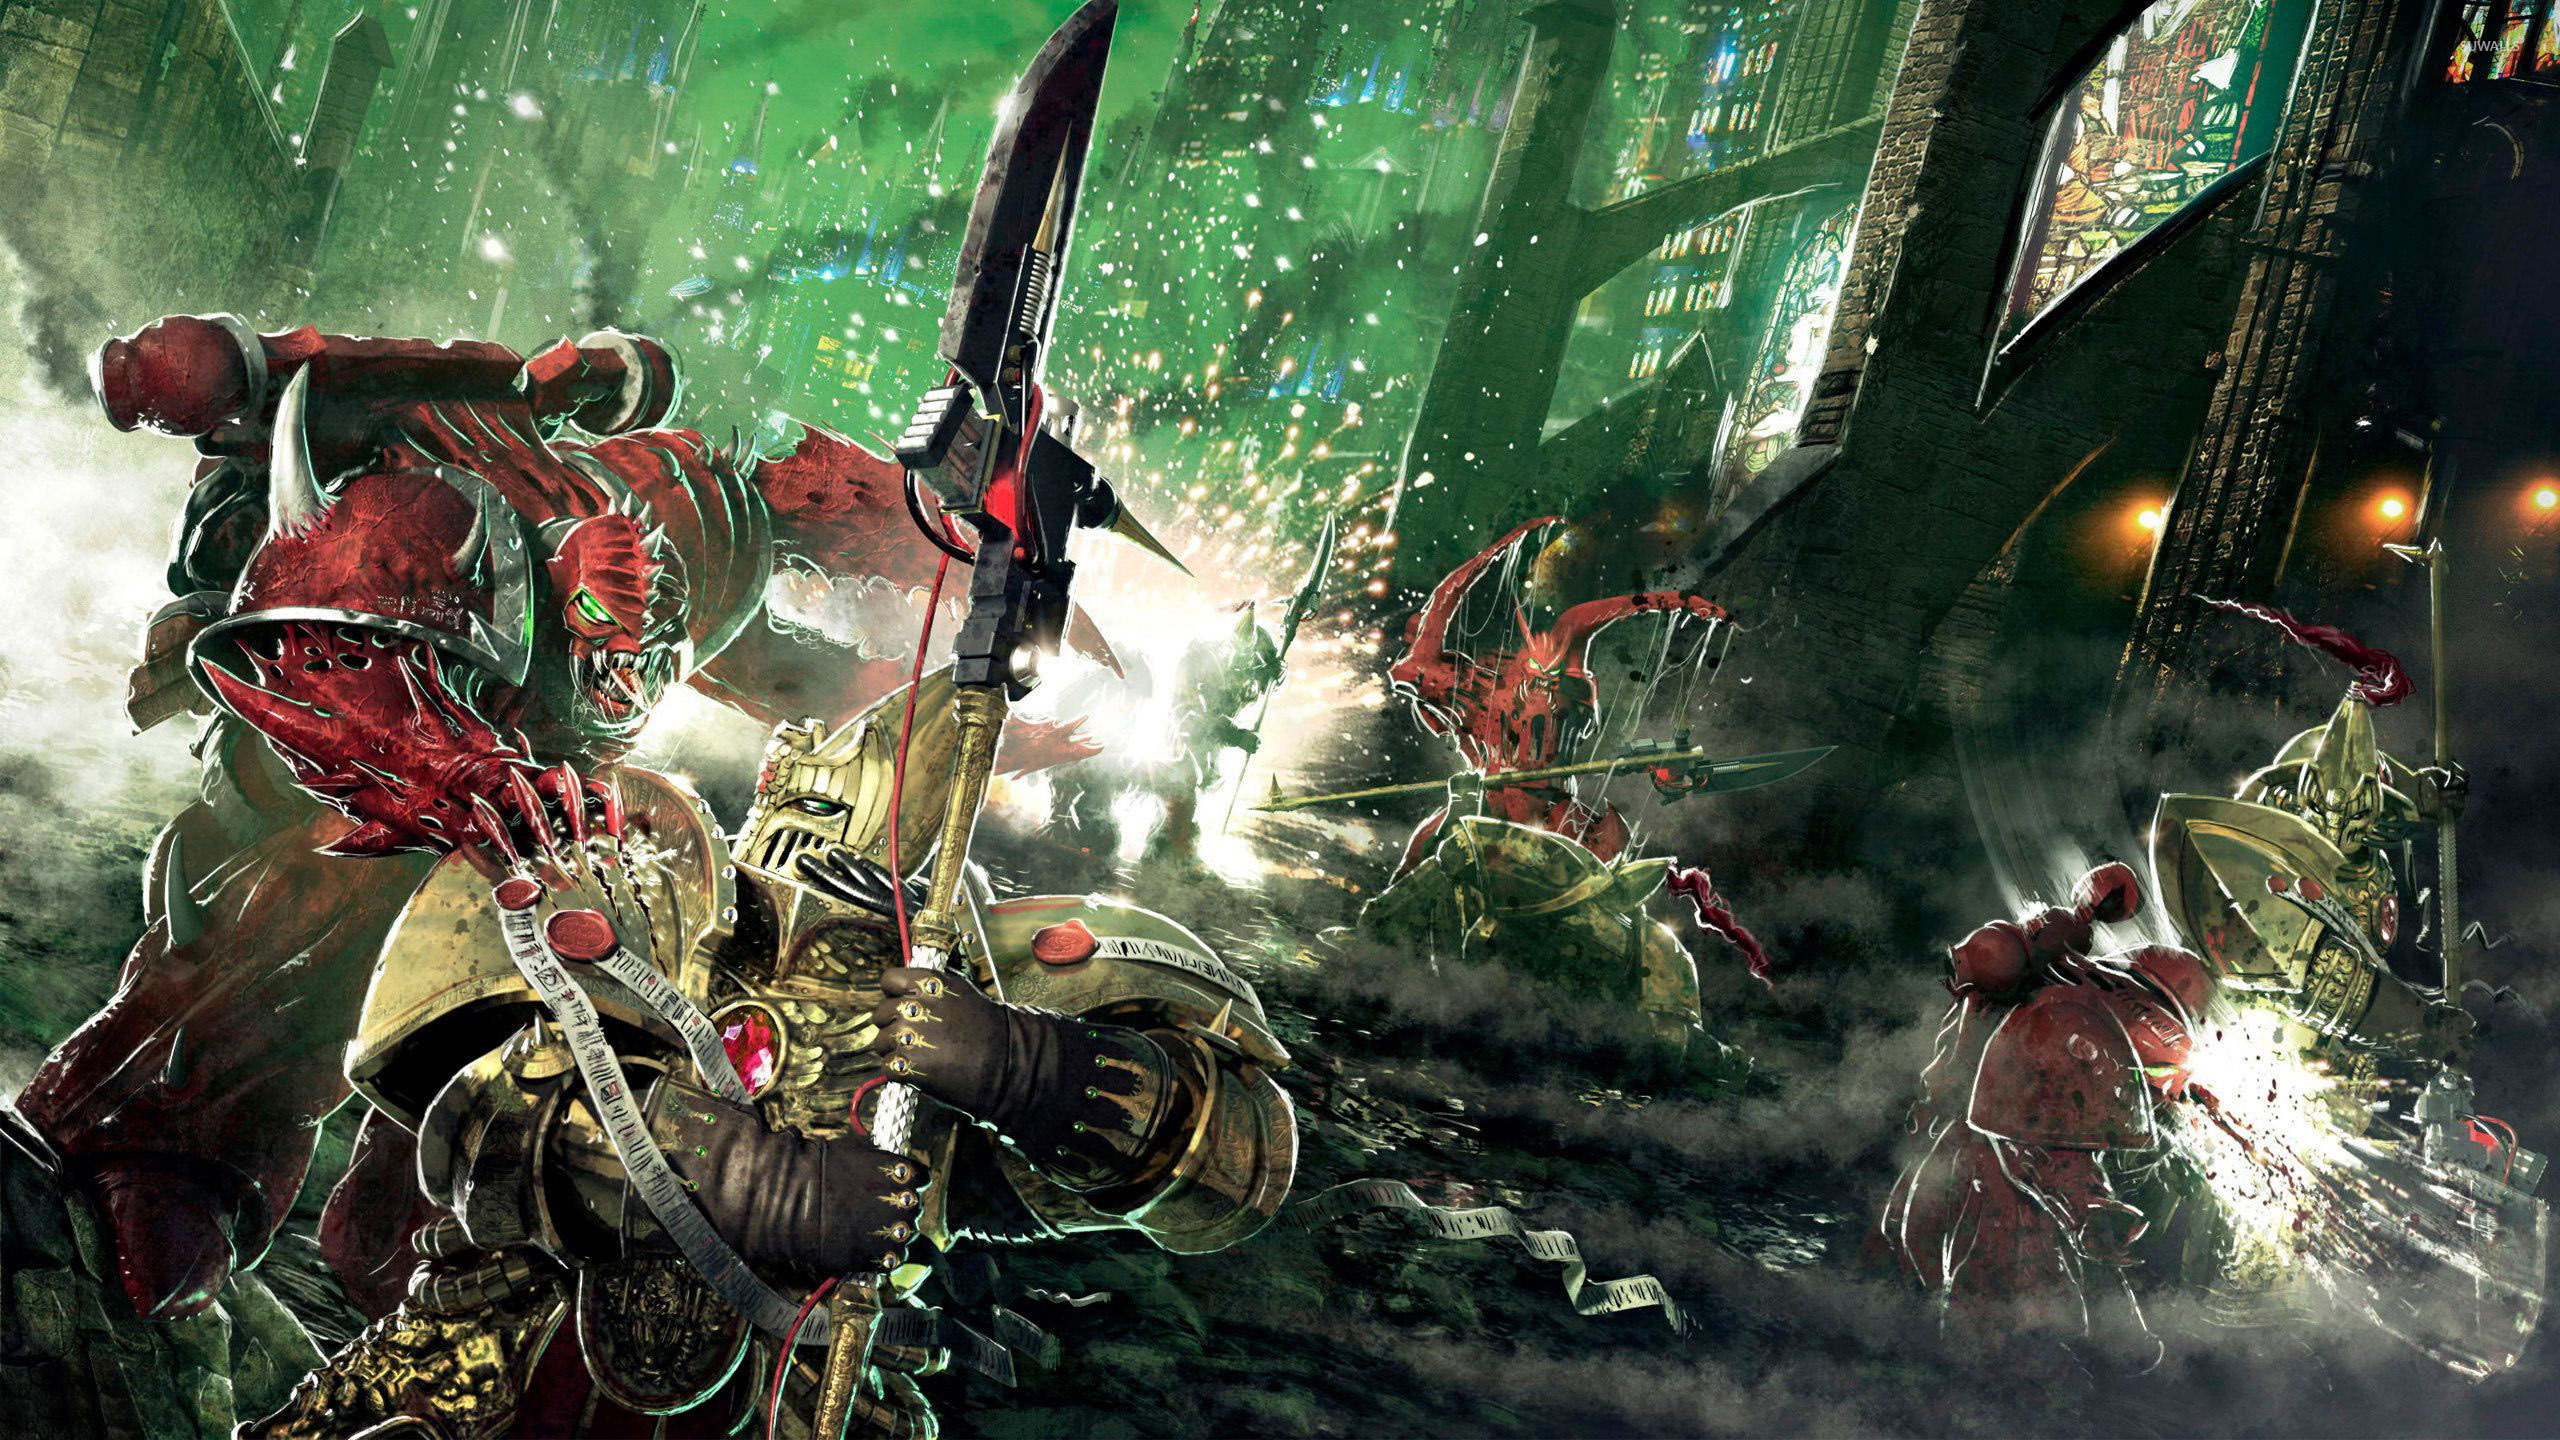 Horus Heresy - Warhammer 40,000 [2] wallpaper - Game